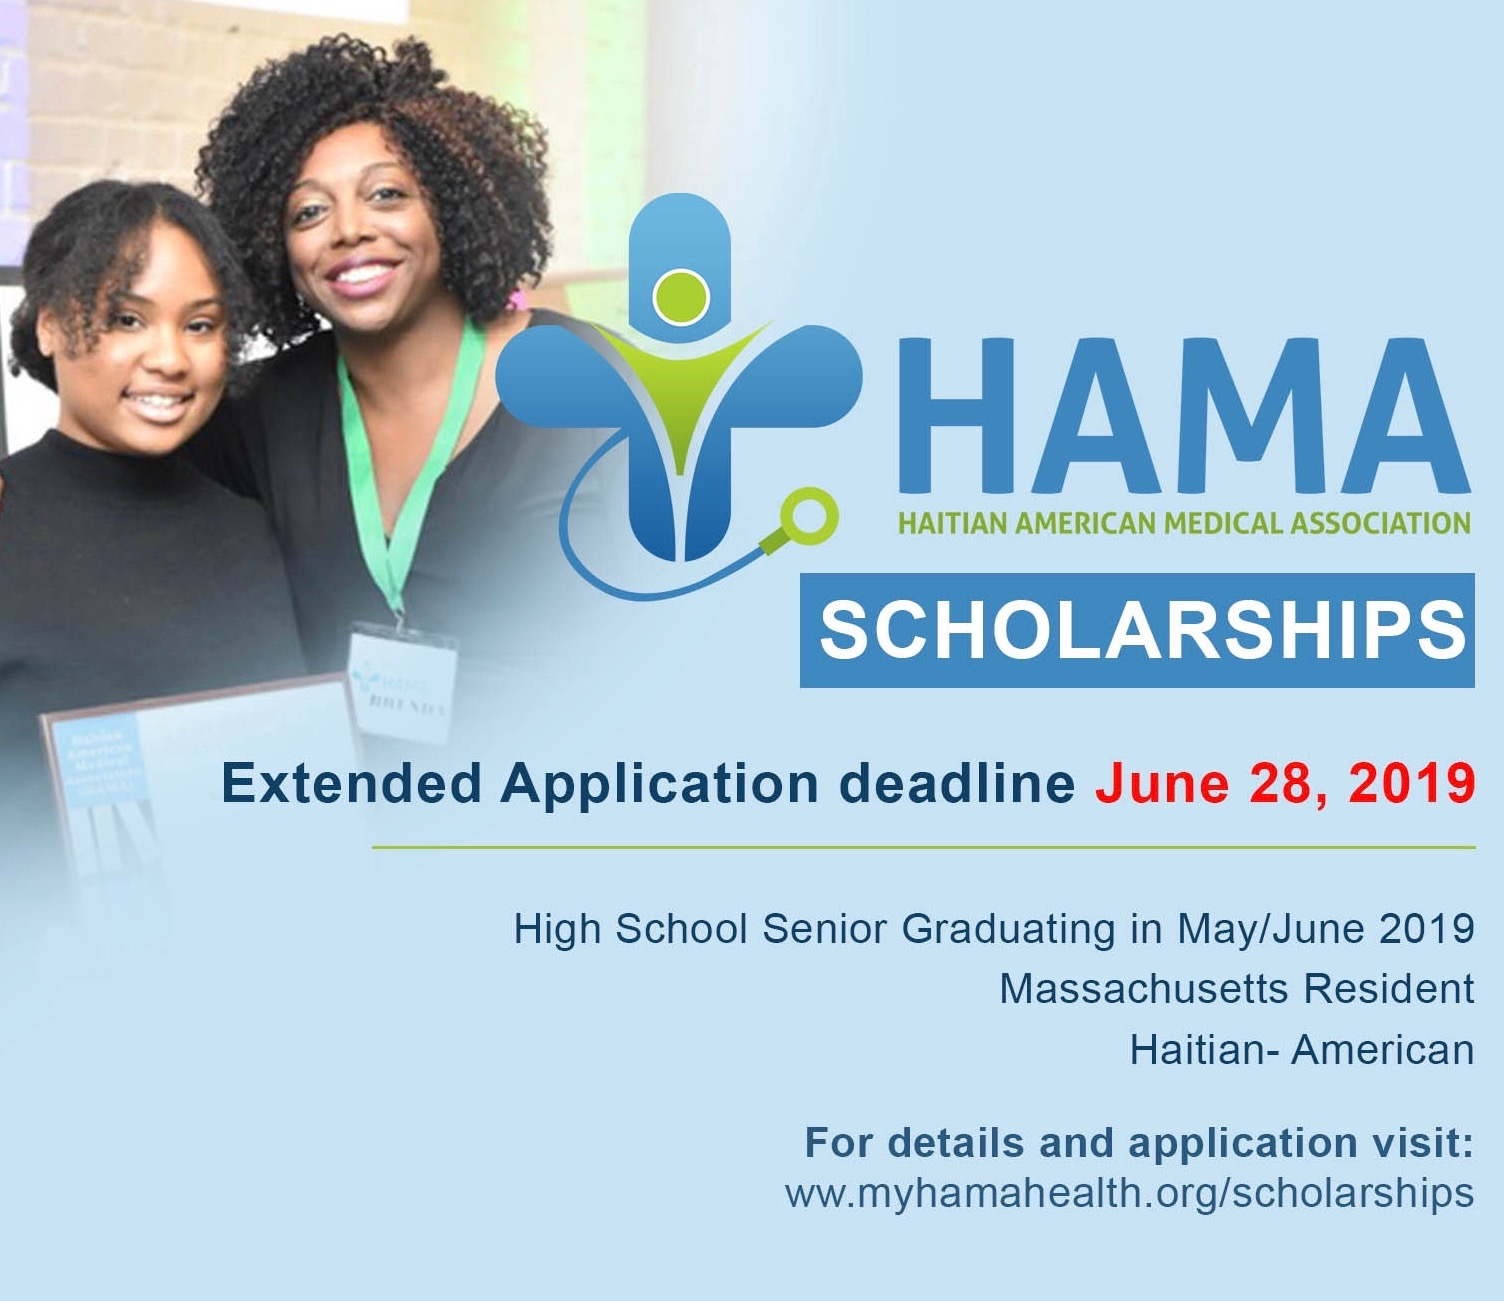 """""""Education is the passport to the future, for tomorrow belongs to those who prepare for it today – Malcolm X.""""    Each year, HAMA aims to recognize exemplary students in the Haitian Community that have made a commitment to achieve academic excellence. If you are or know of any high school seniors of Haitian descent pursuing continued education in Fall of 2019 towards an Associate's degree or Bachelor's degree (Healthcare Track), please look into applying! For more information click the graphic above."""